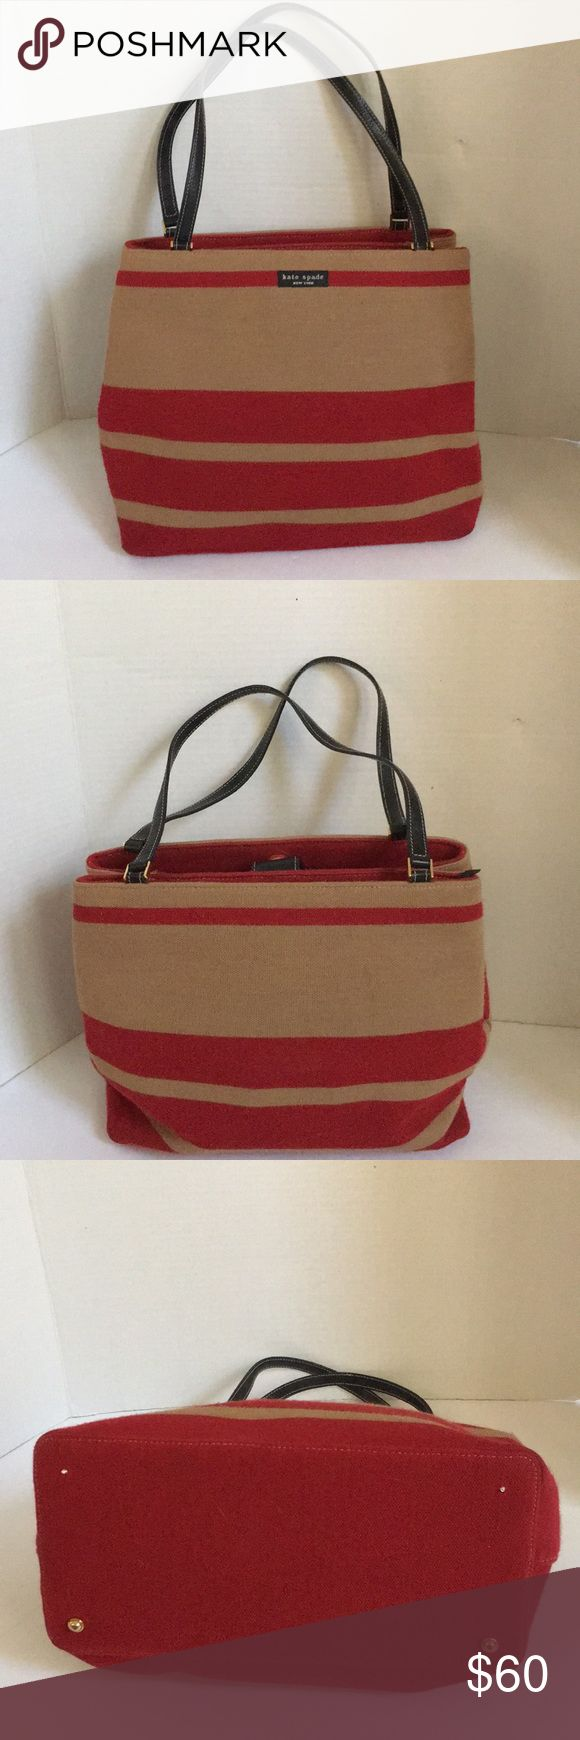 Kate spade vintage Sagaponack stripe Shoulderbag This is a nice Kate Spade vintage stripe shoulder bag from 2001. Features tan and red striped material exterior. 8 inch leather shoulder straps. Goldtone hardware. Has protective and metal feet at the bottom but two of the feeder missing. Has two interior compartments. One zipper closure and the other magnetic snap closure.  Zipper pocket inside with made in Italy stamp. Great condition for vintage. Just light signs of use. No significant…